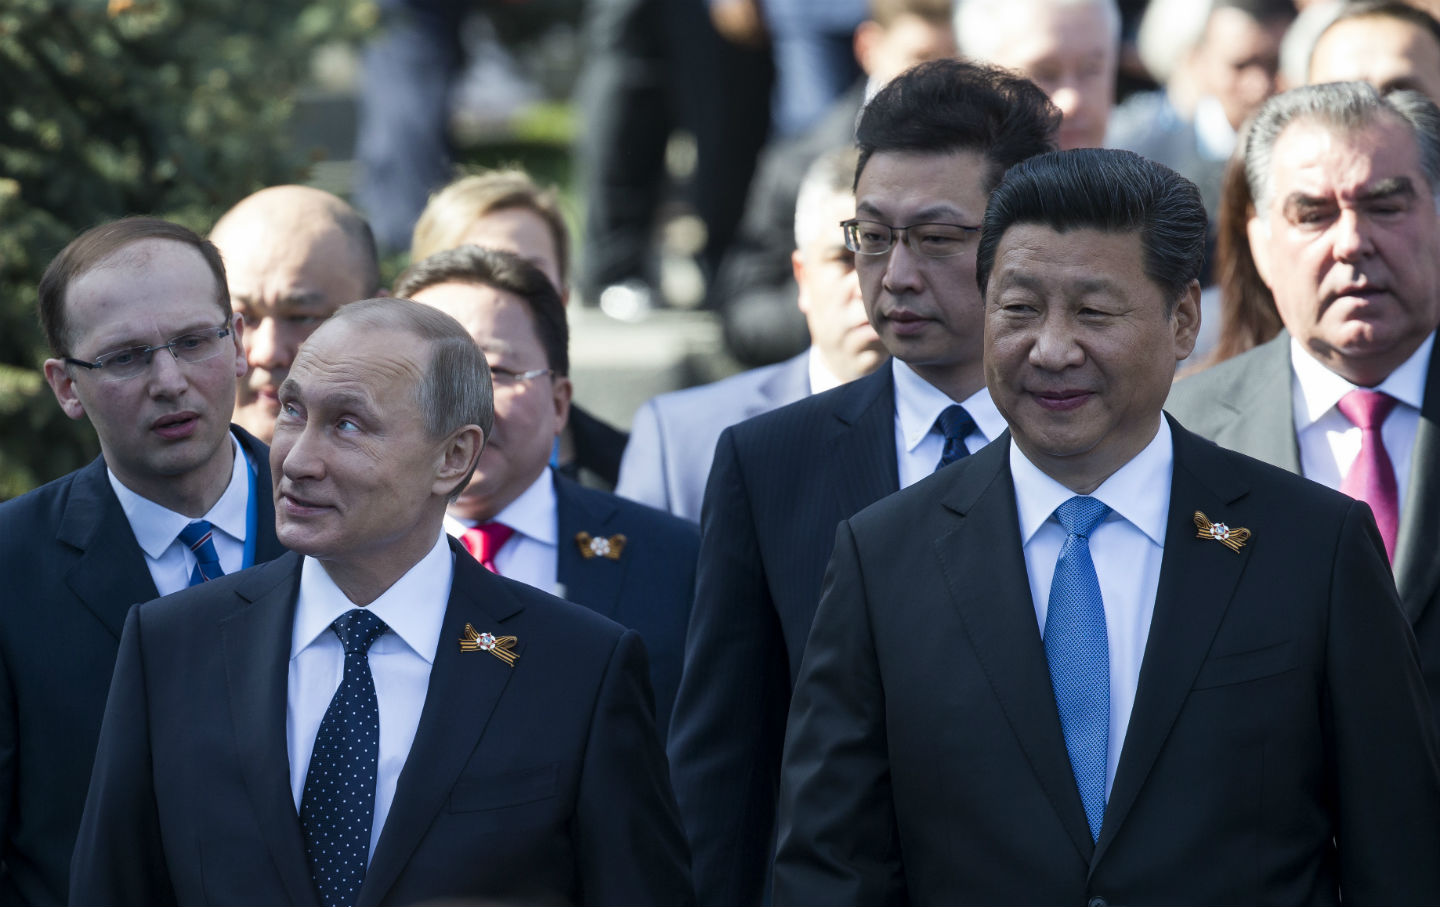 Putin and Xi at the Red Square